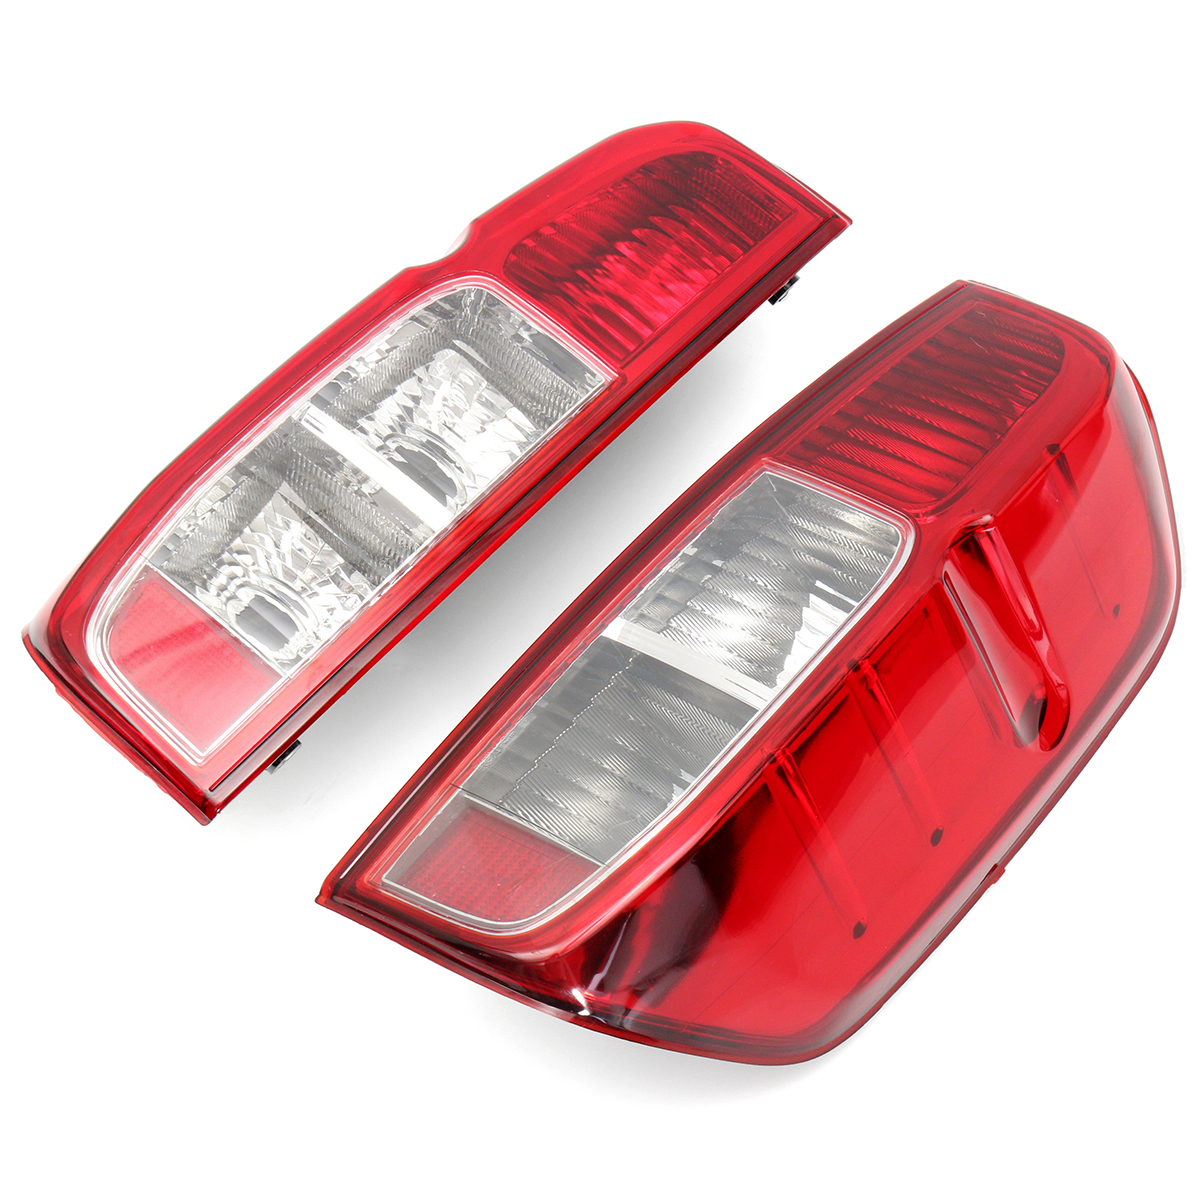 2Pcs LEFT/RIGHT Rear Tail Light Driver Passenger Side Lamp For Nissan NAVARA D40 2005-2015 for nlssan navara d40